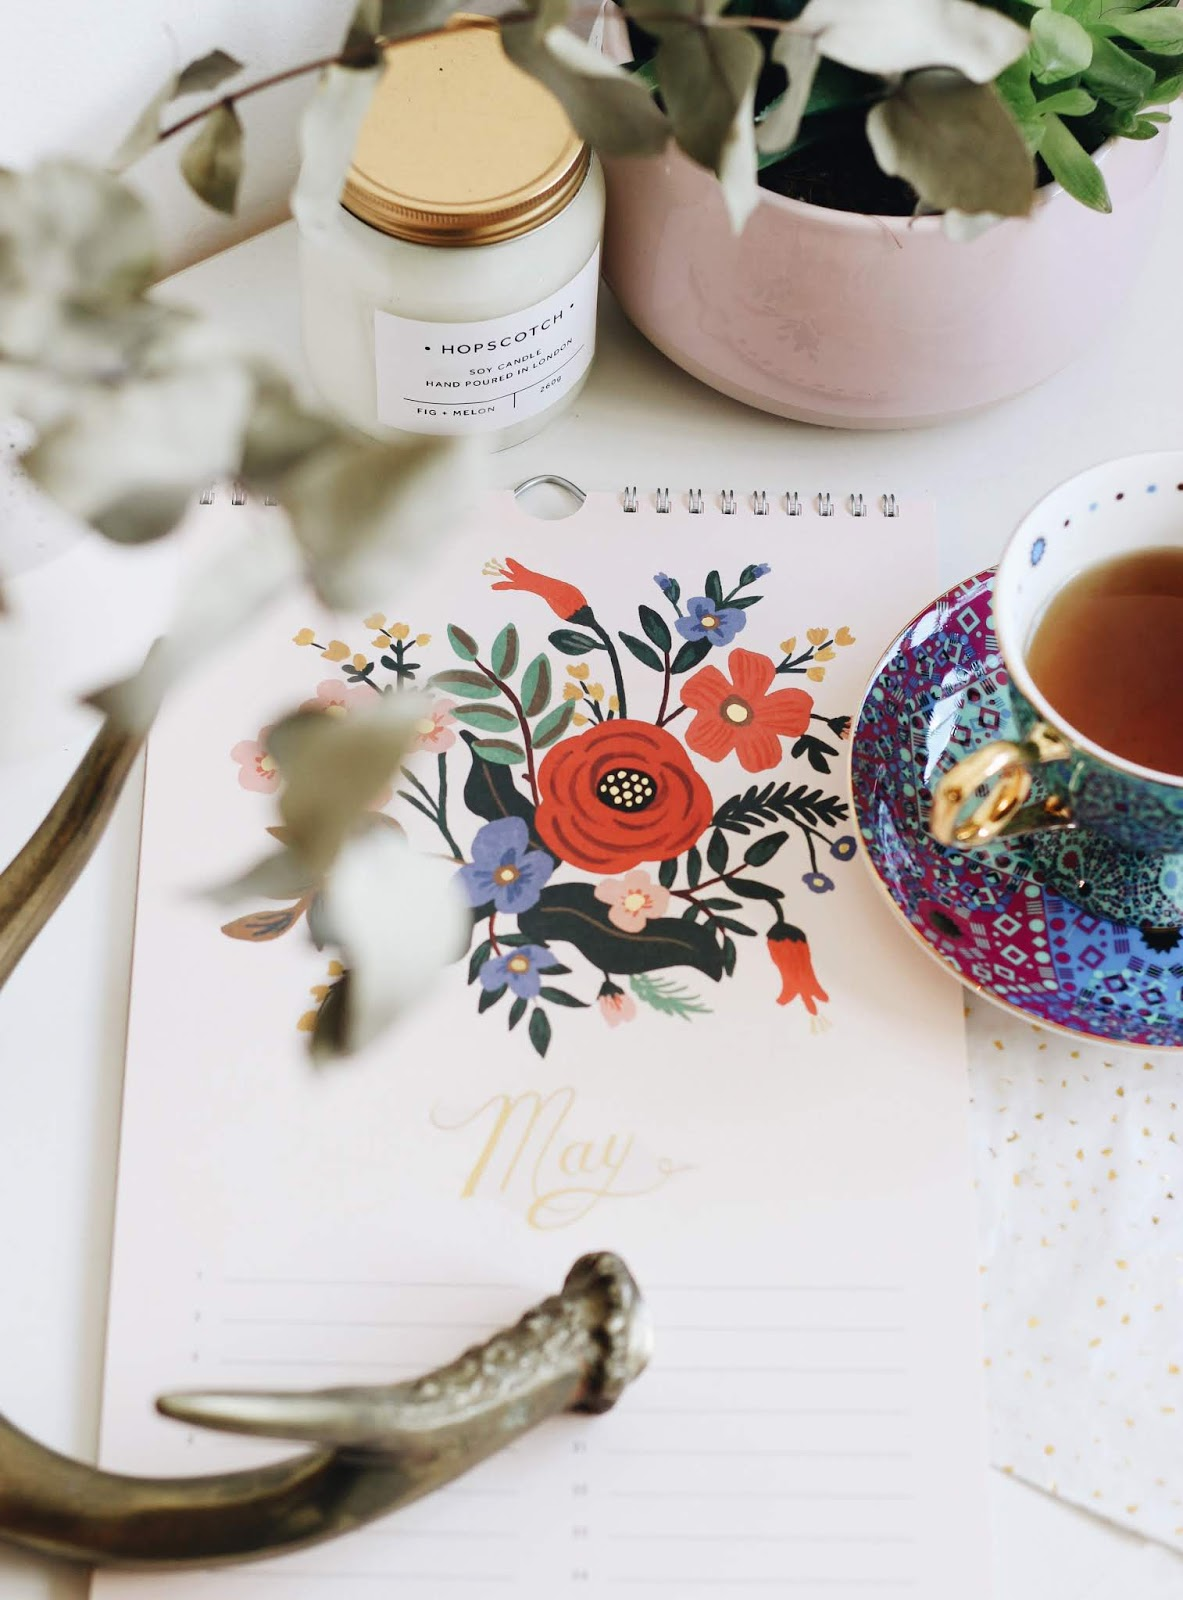 5 Things I've Added To My May To-Do List